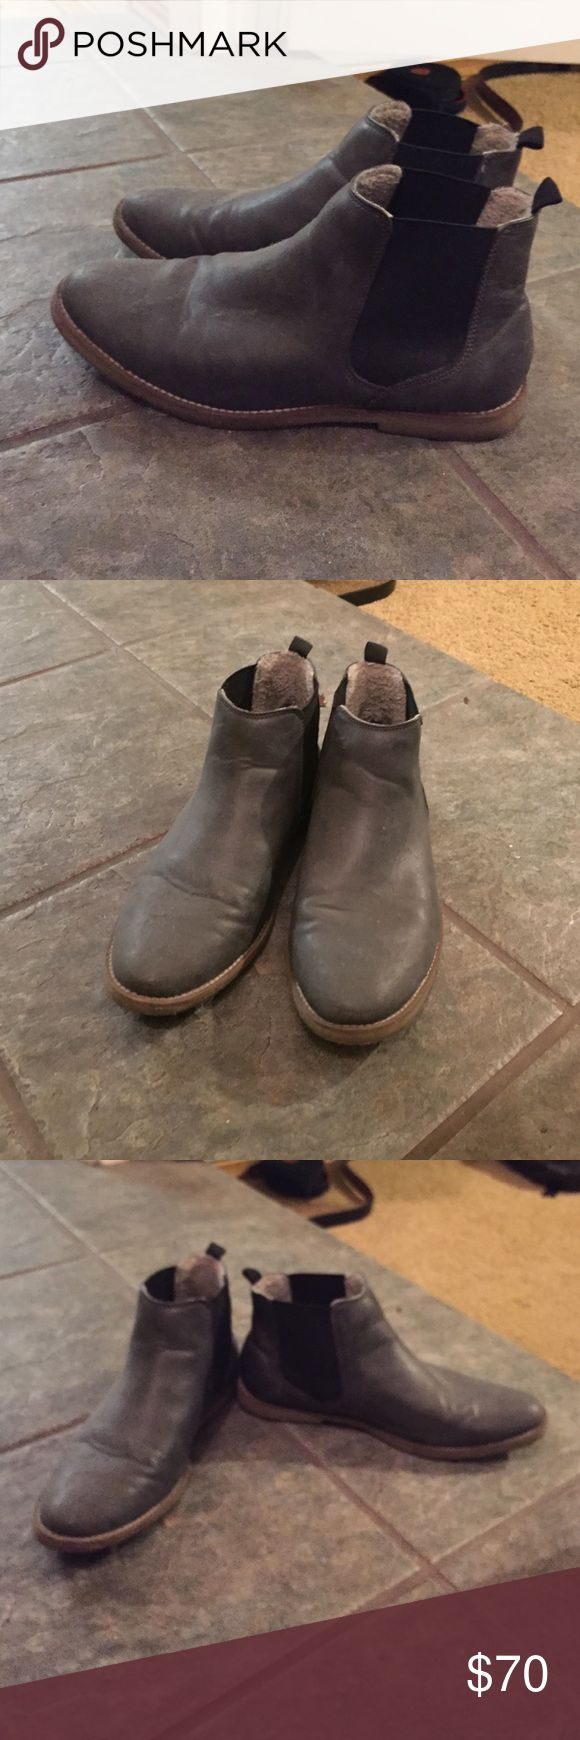 Topman Chelsea Boots Grey Topman Chelsea Boots, lightly worn. Topman Shoes Boots